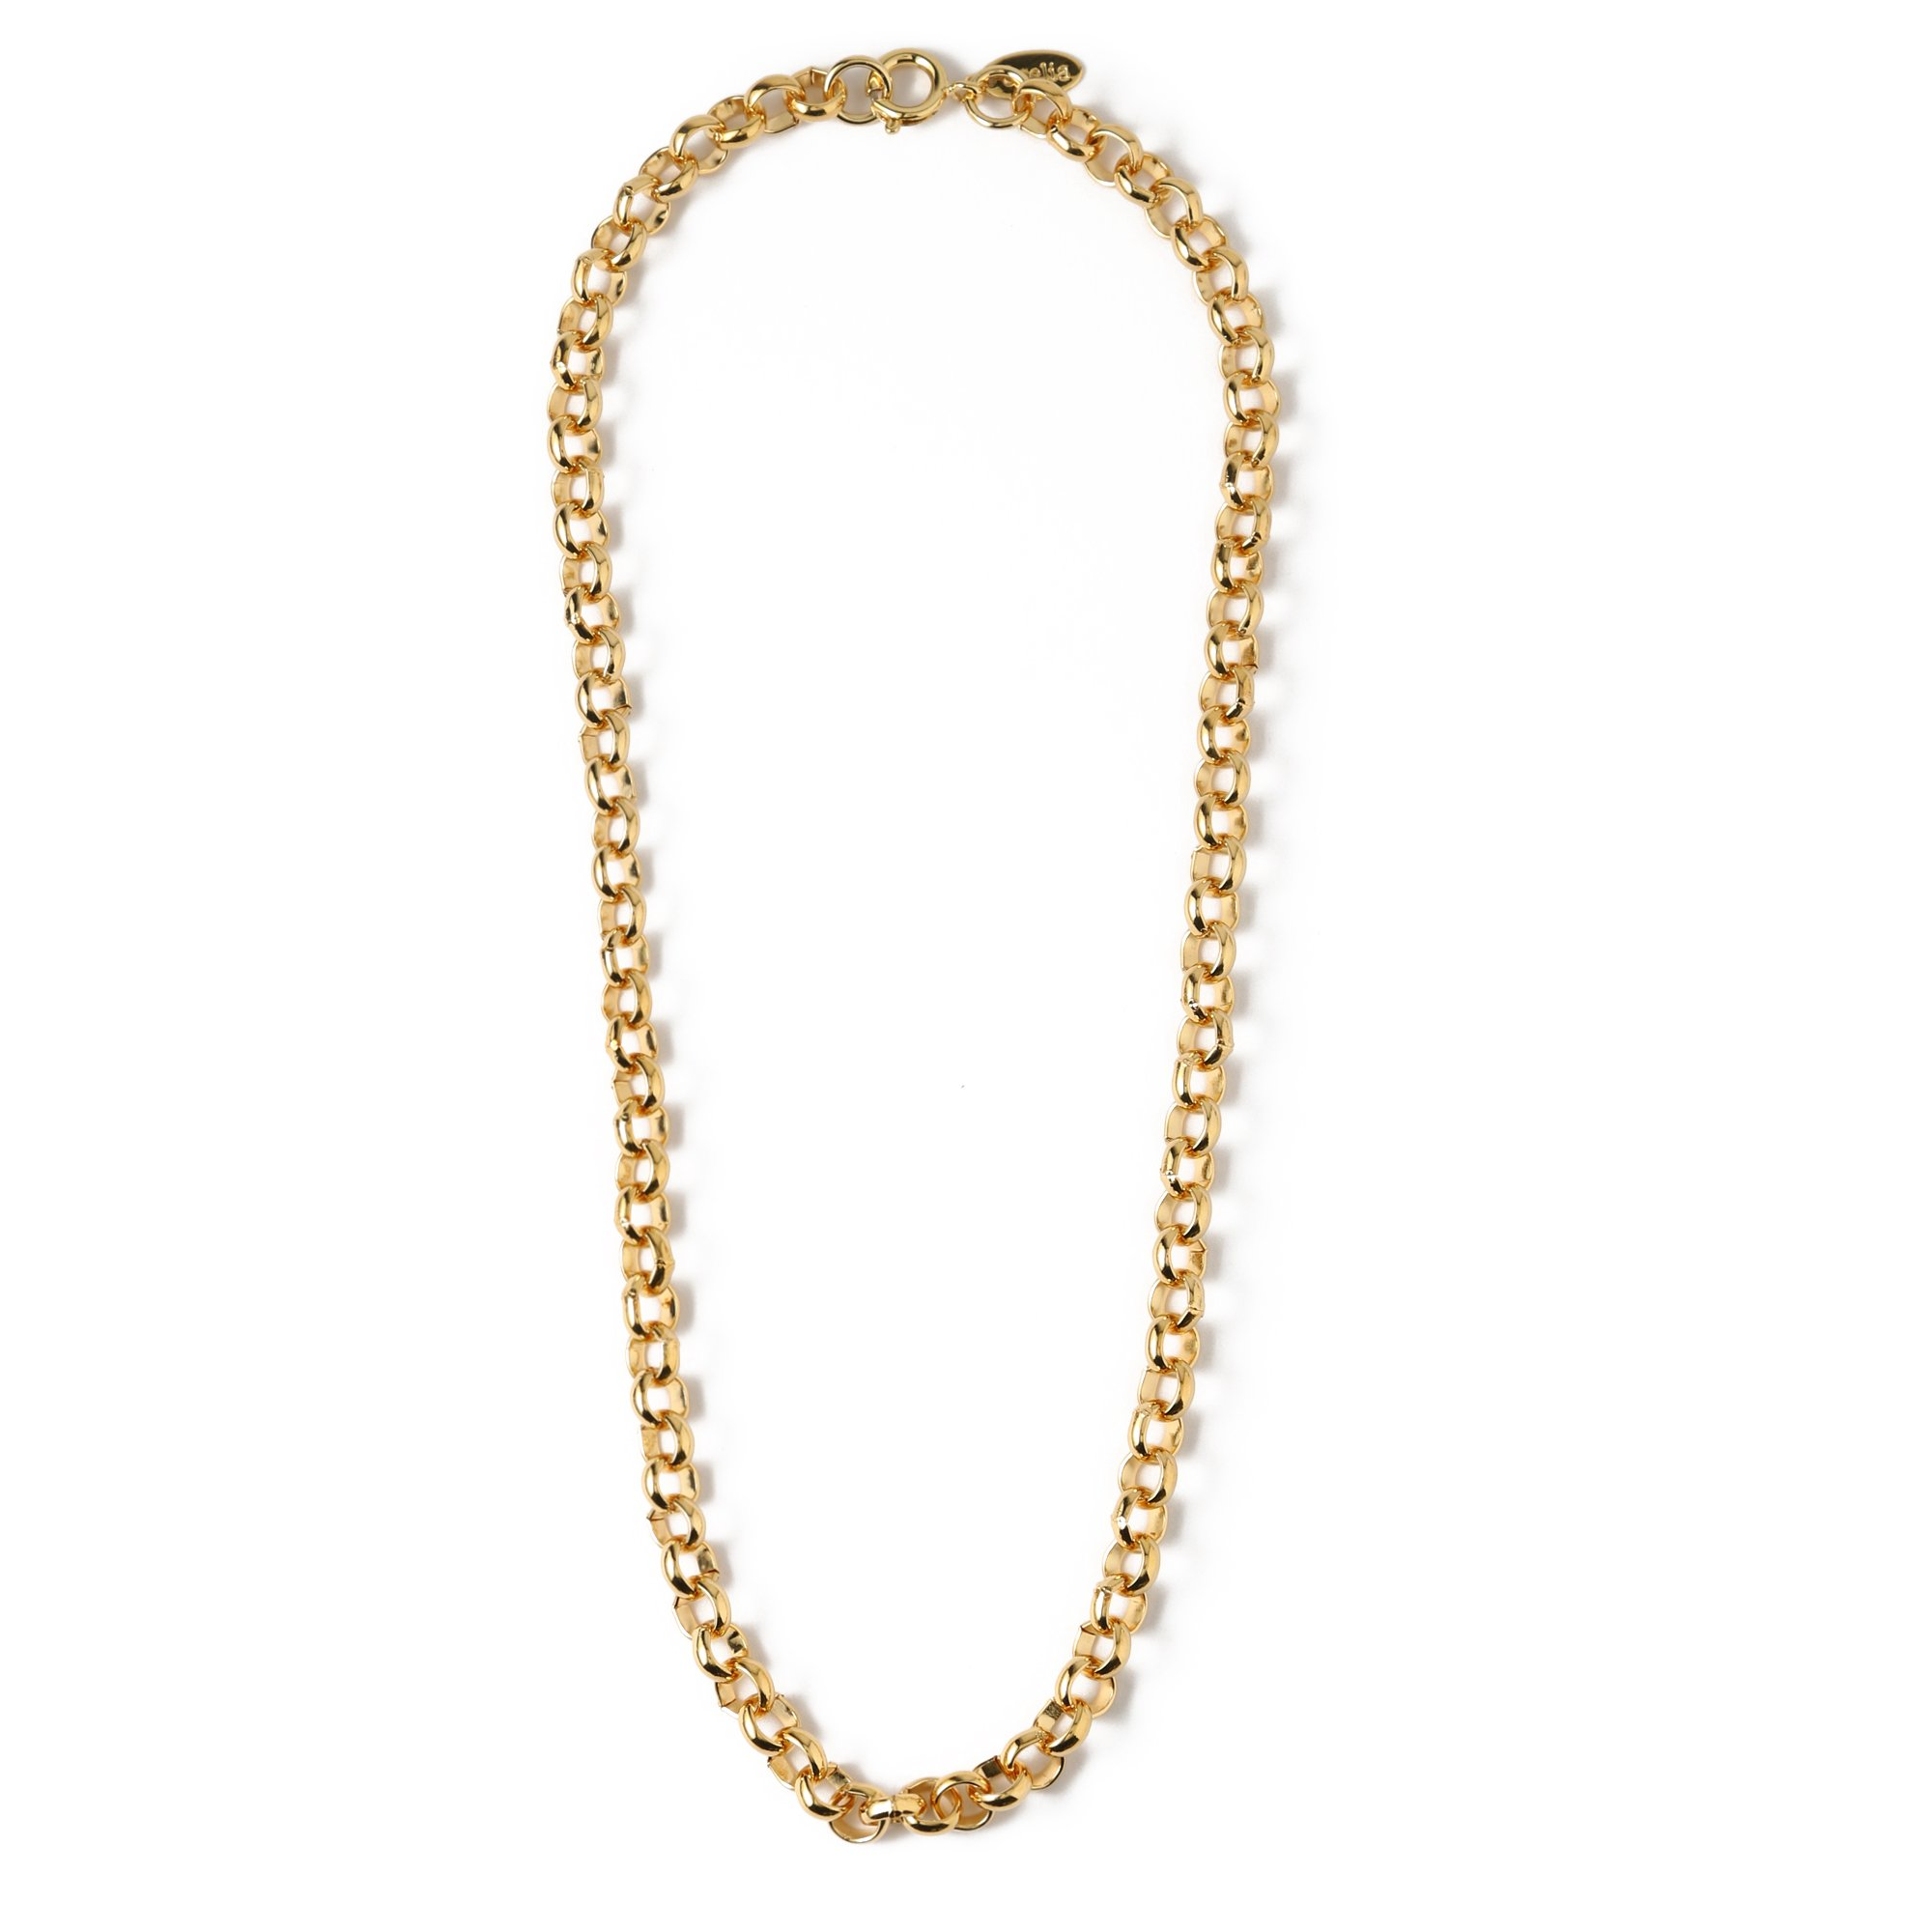 Chunky Link Chain Necklace 16""